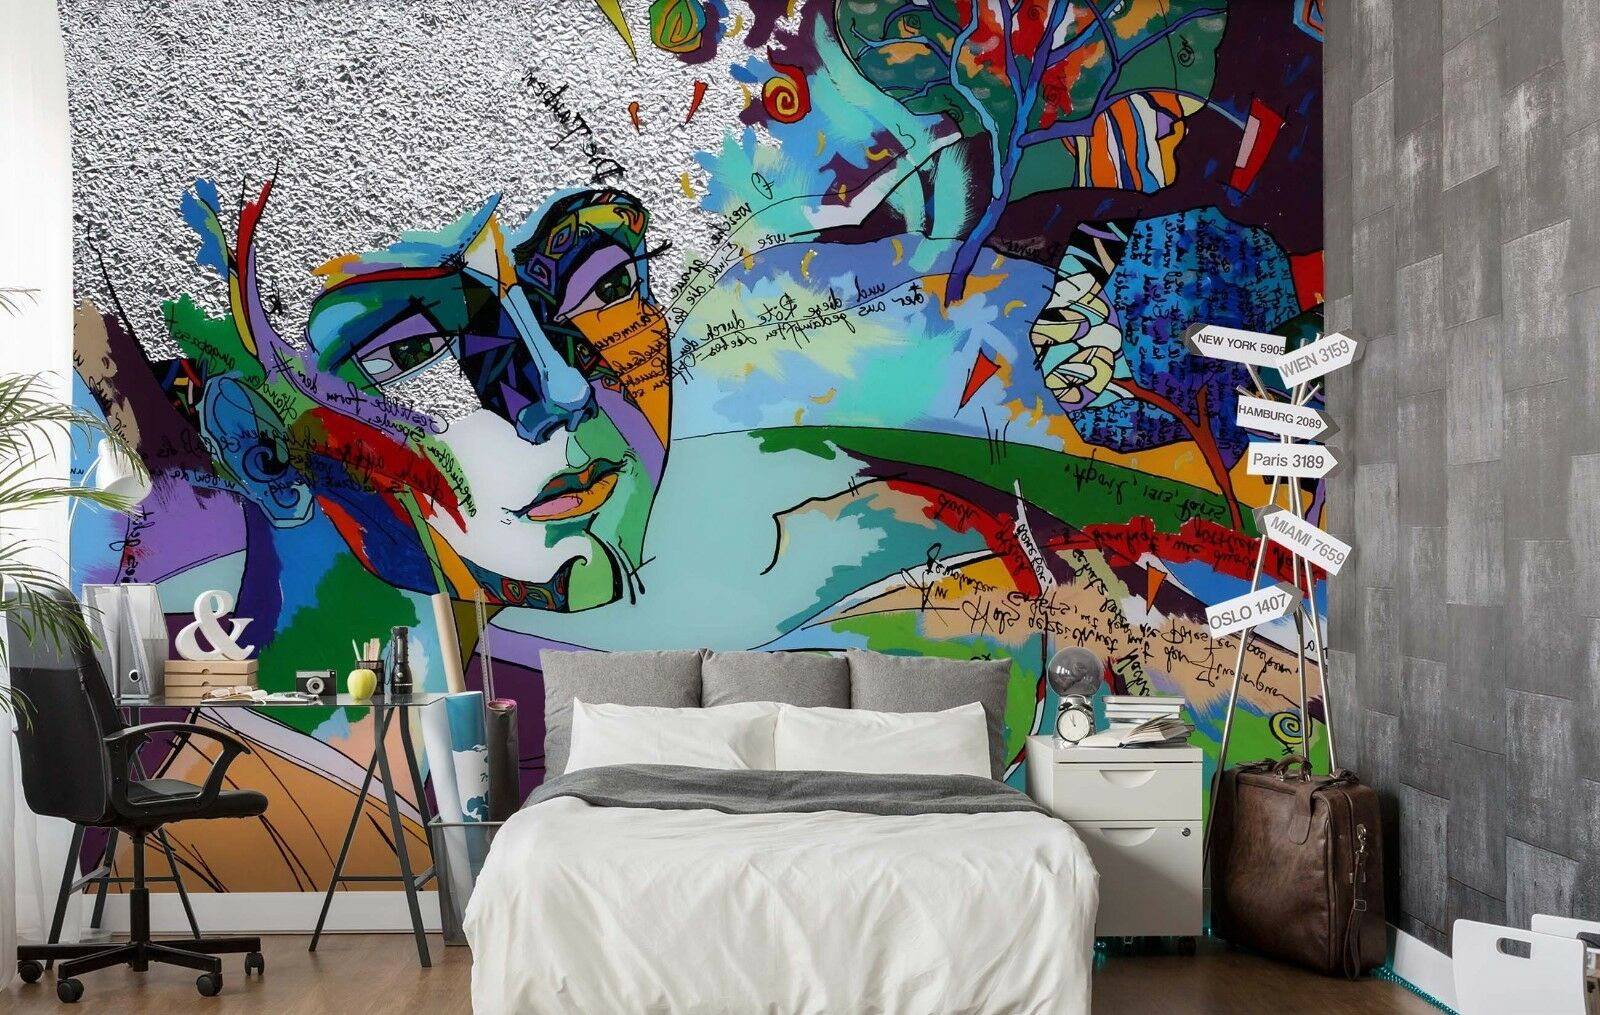 3D Graffiti Face 7 Wall Paper Print Wall Decal Deco Indoor Wall Murals US Summer